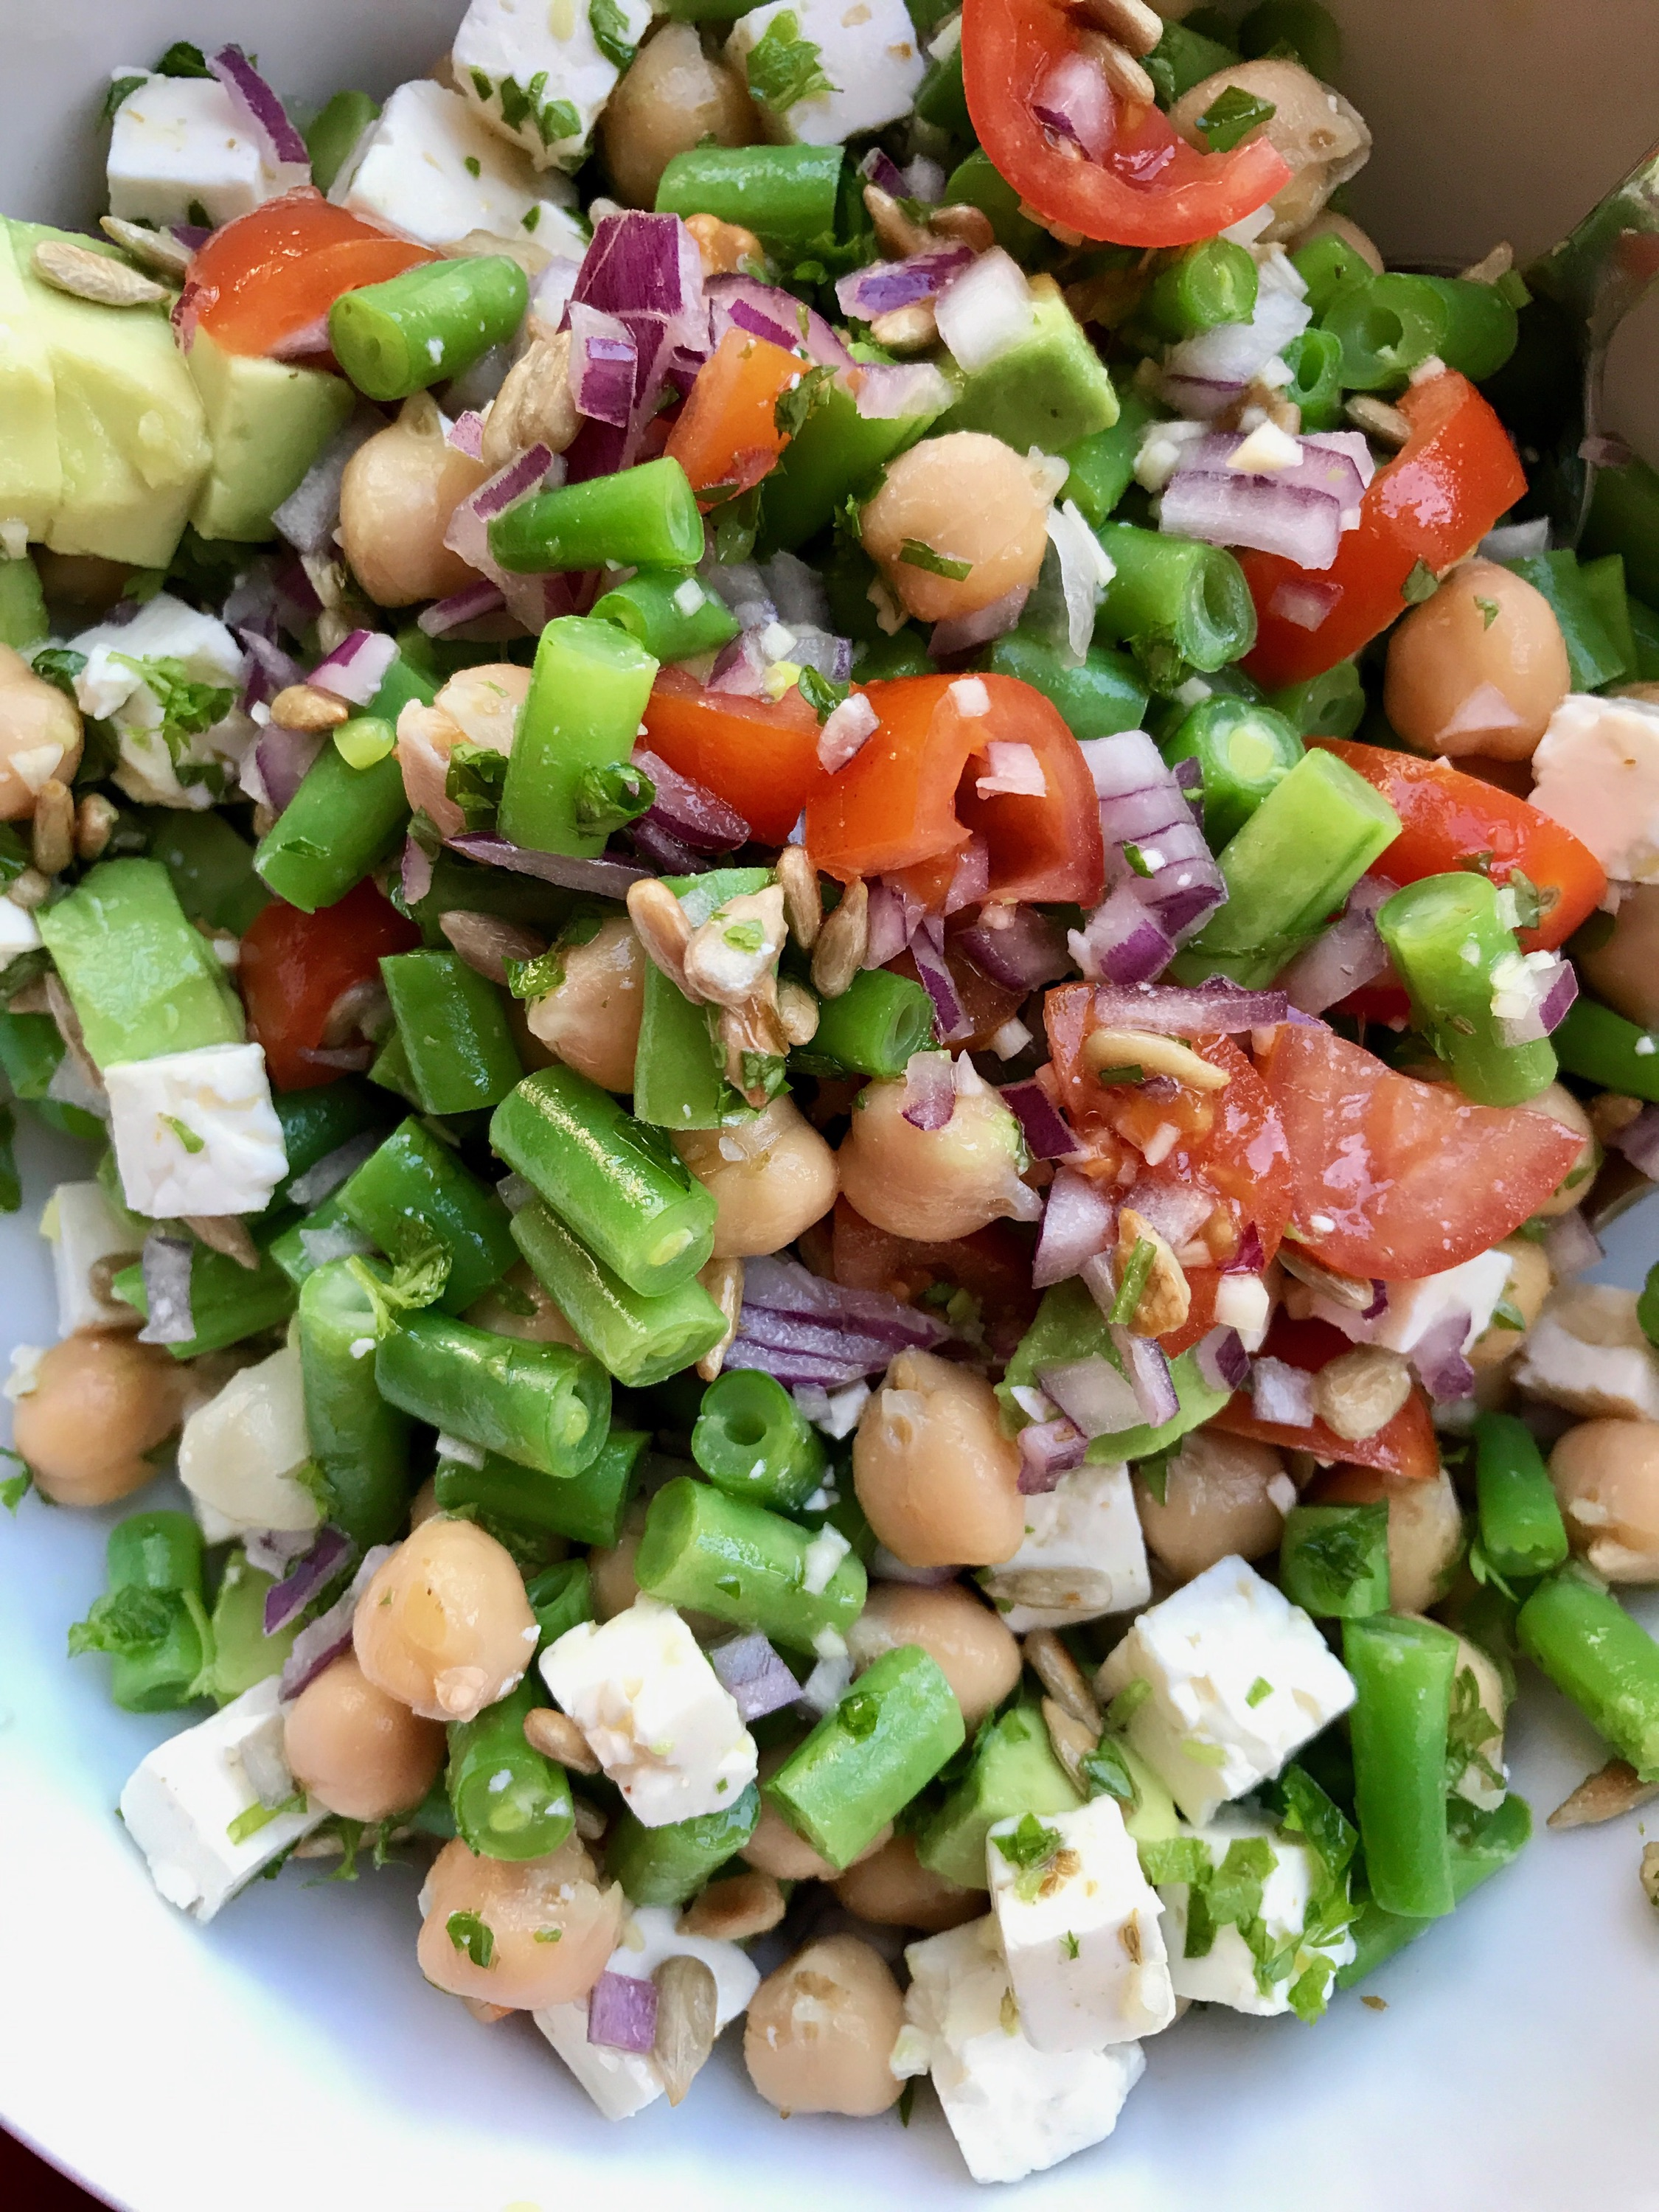 Salad with Green Beans and Chickpeas